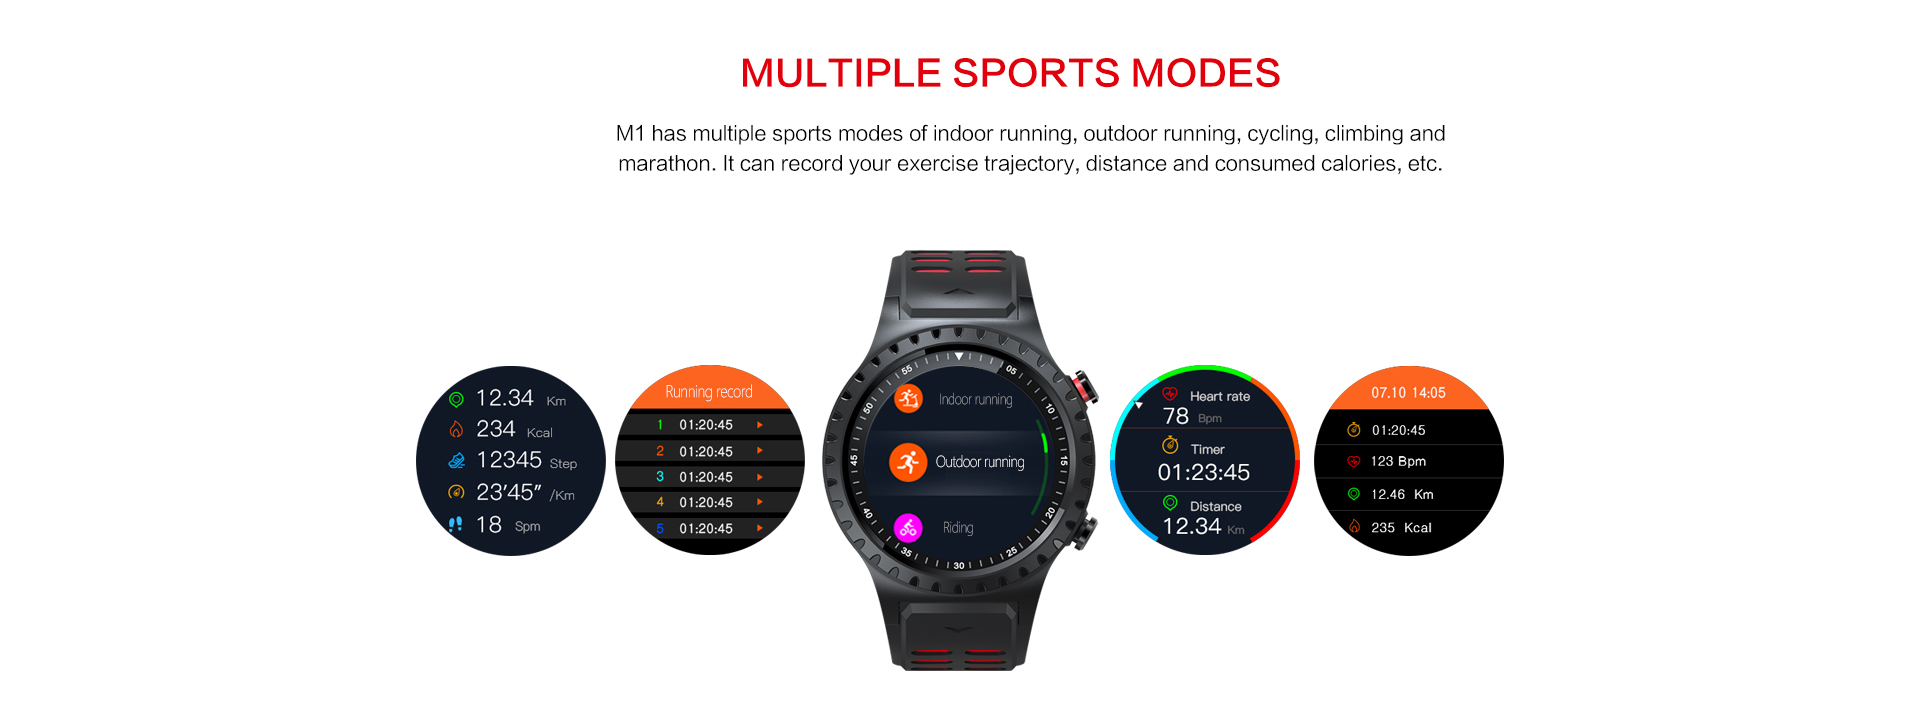 Hot Sale High Quality IP67 Waterproof smart watch with Buildt-in GPS,Compass,Barometer,Multi-sport,Dynamic heart rate,